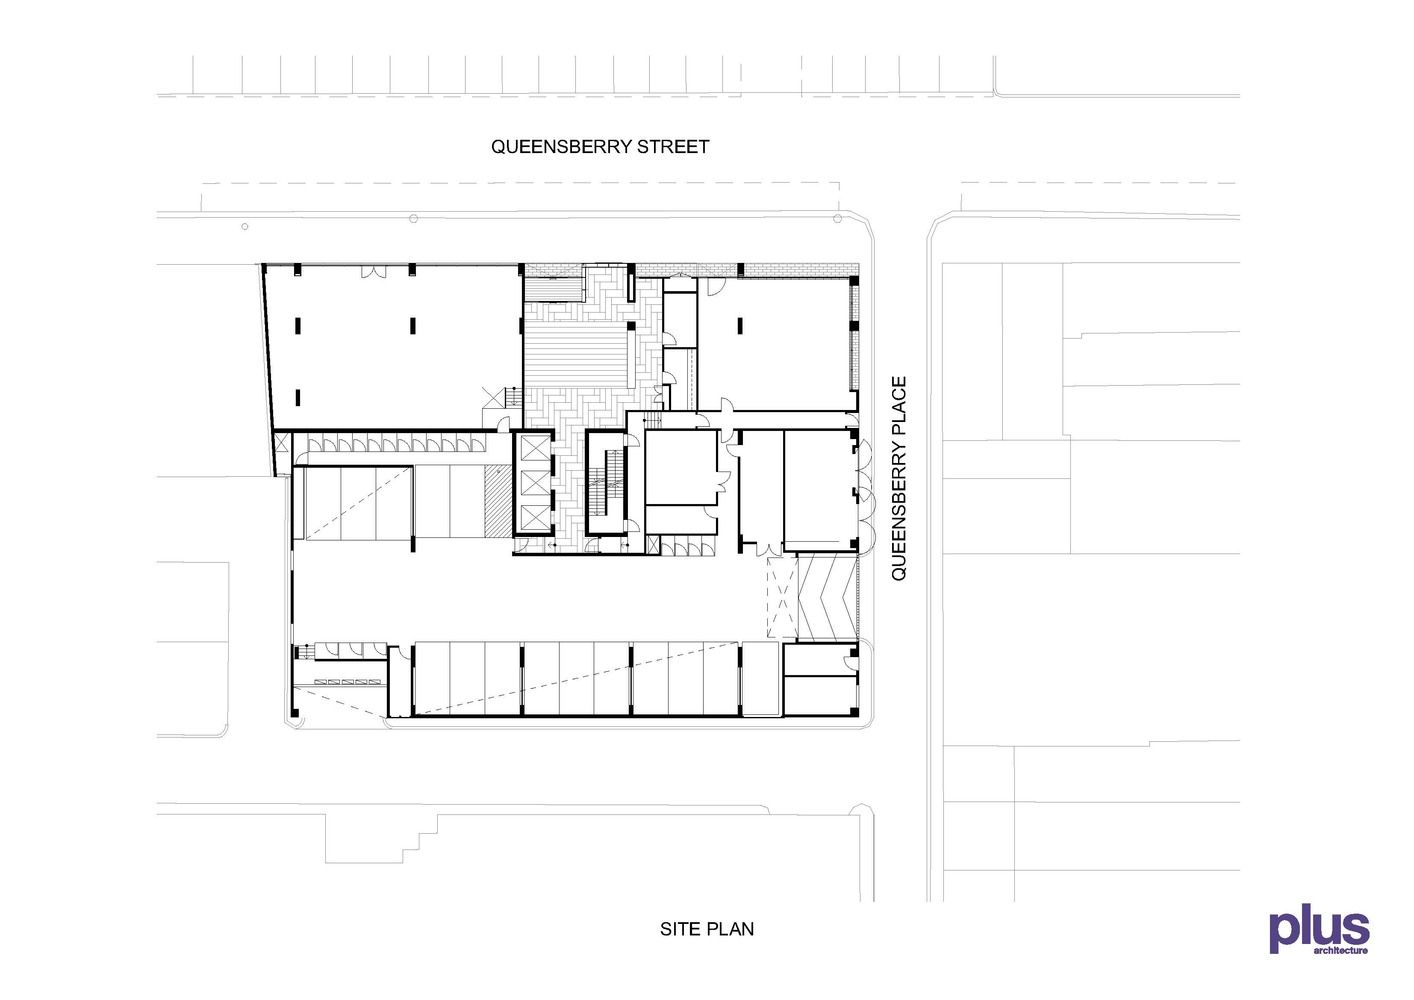 Gallery Of The Eminence Plus Architecture 16 Architecture Site Plan Site Plan Architecture